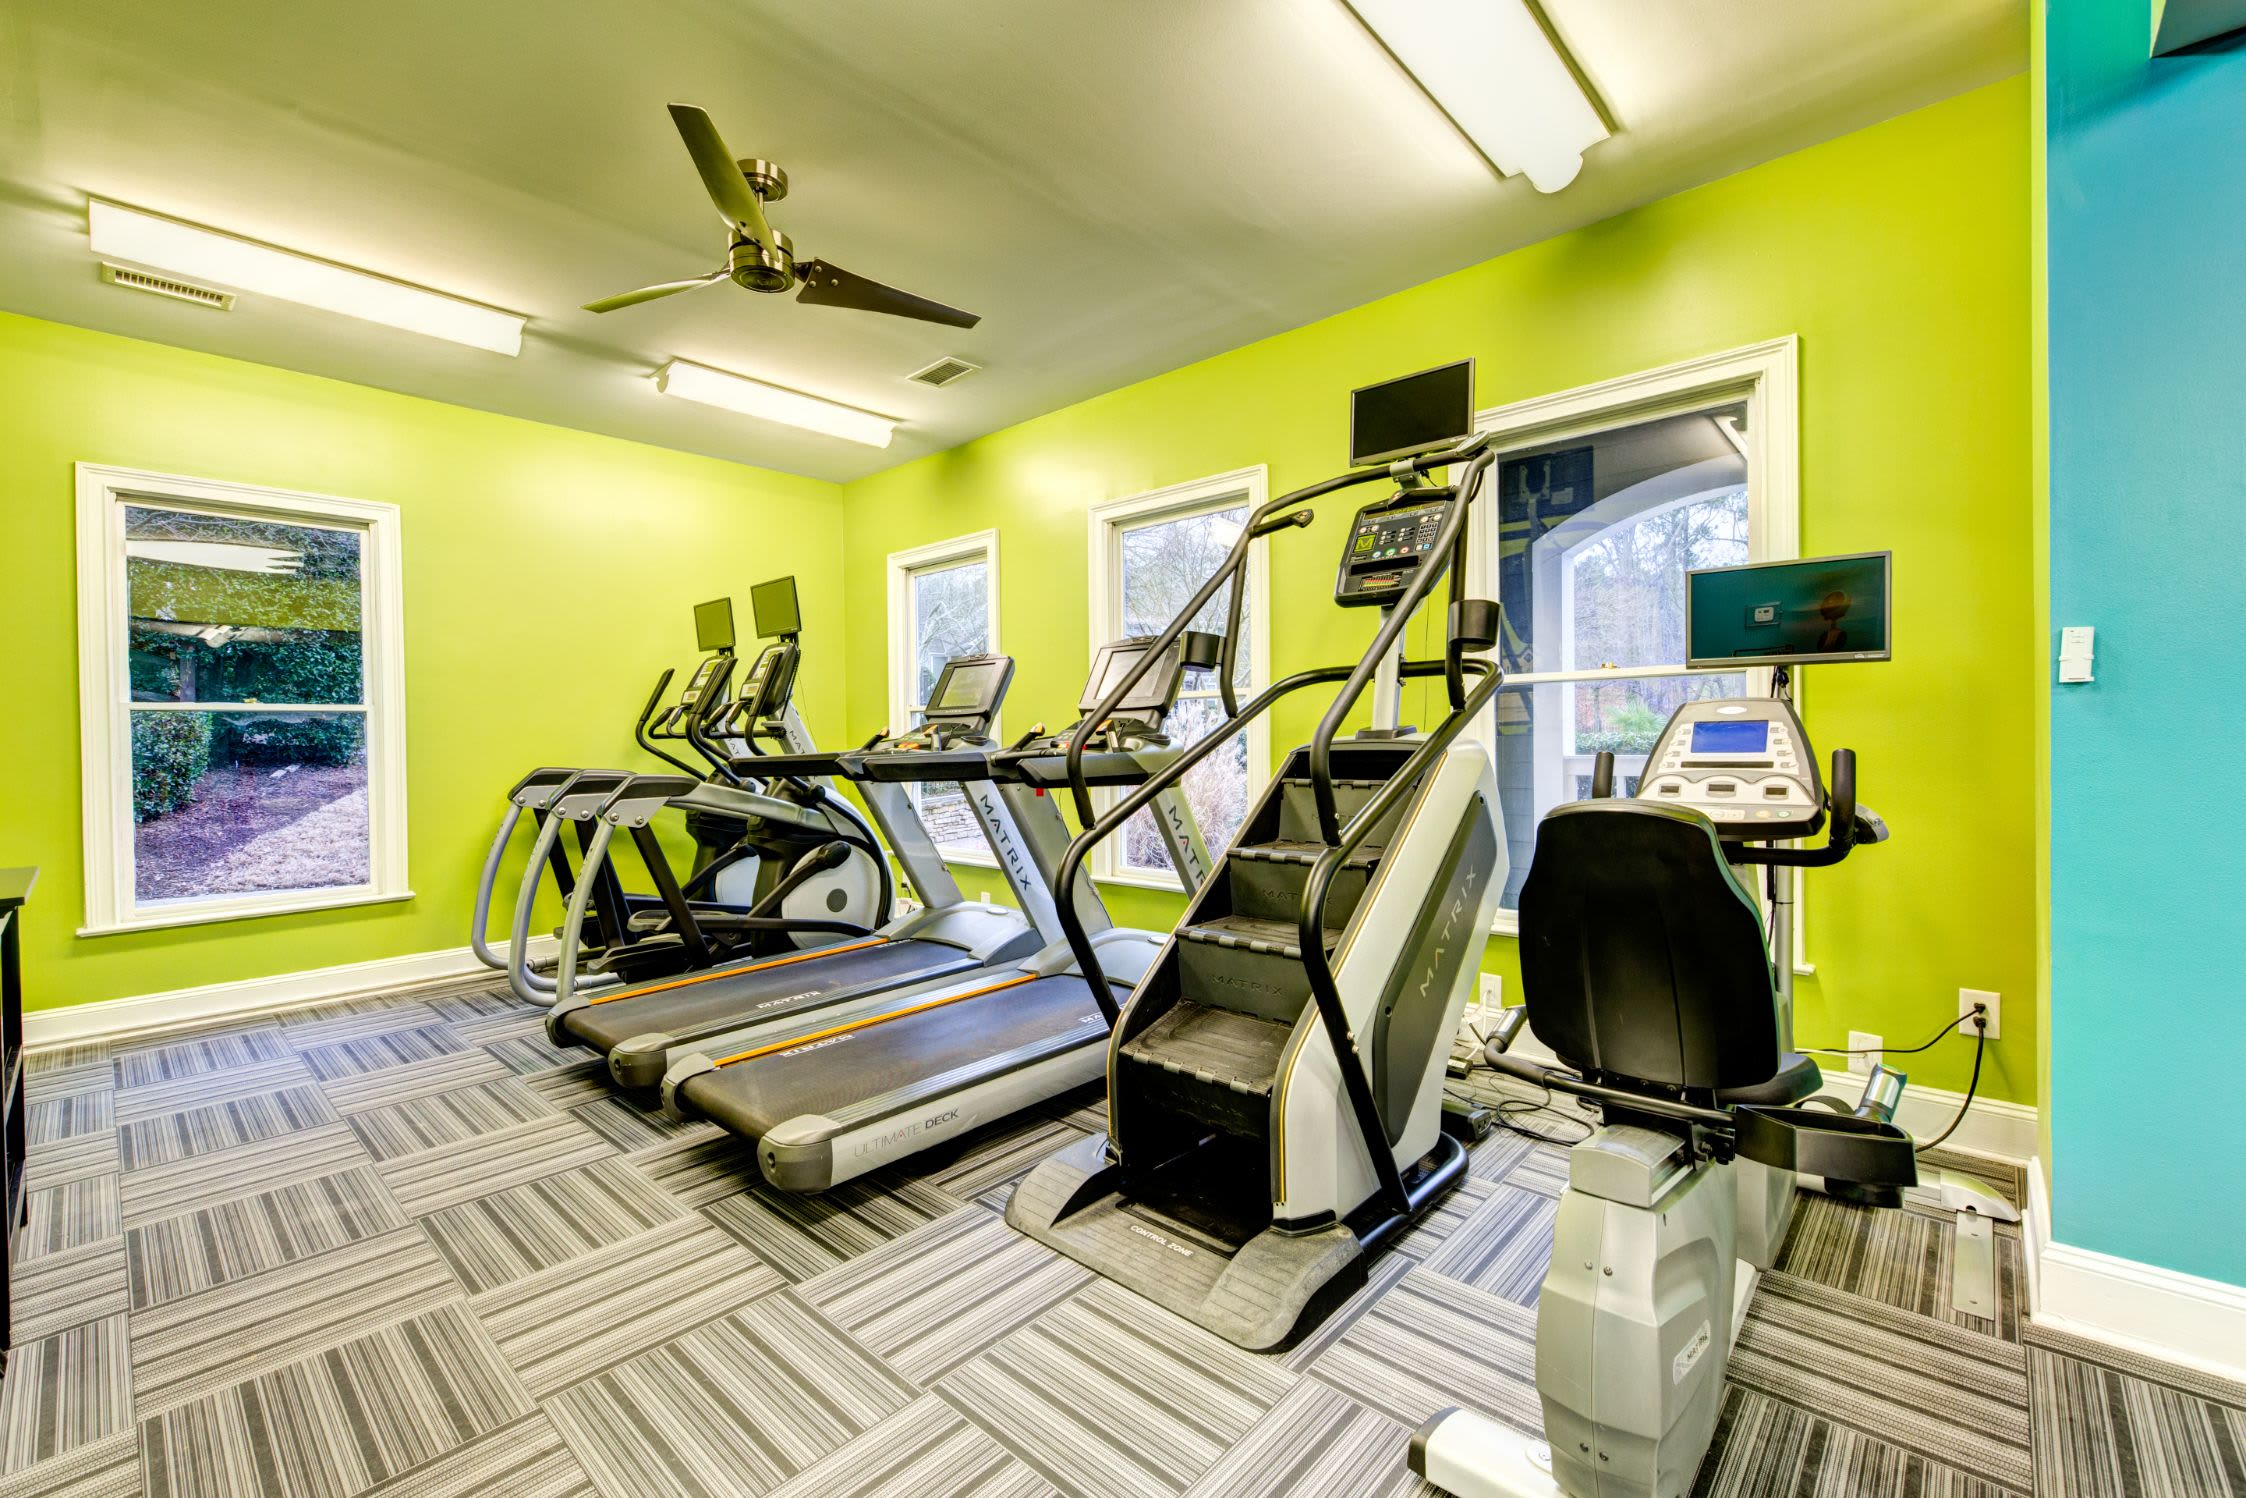 Cardio machines in the fitness center at Marquis on Edwards Mill in Raleigh, North Carolina